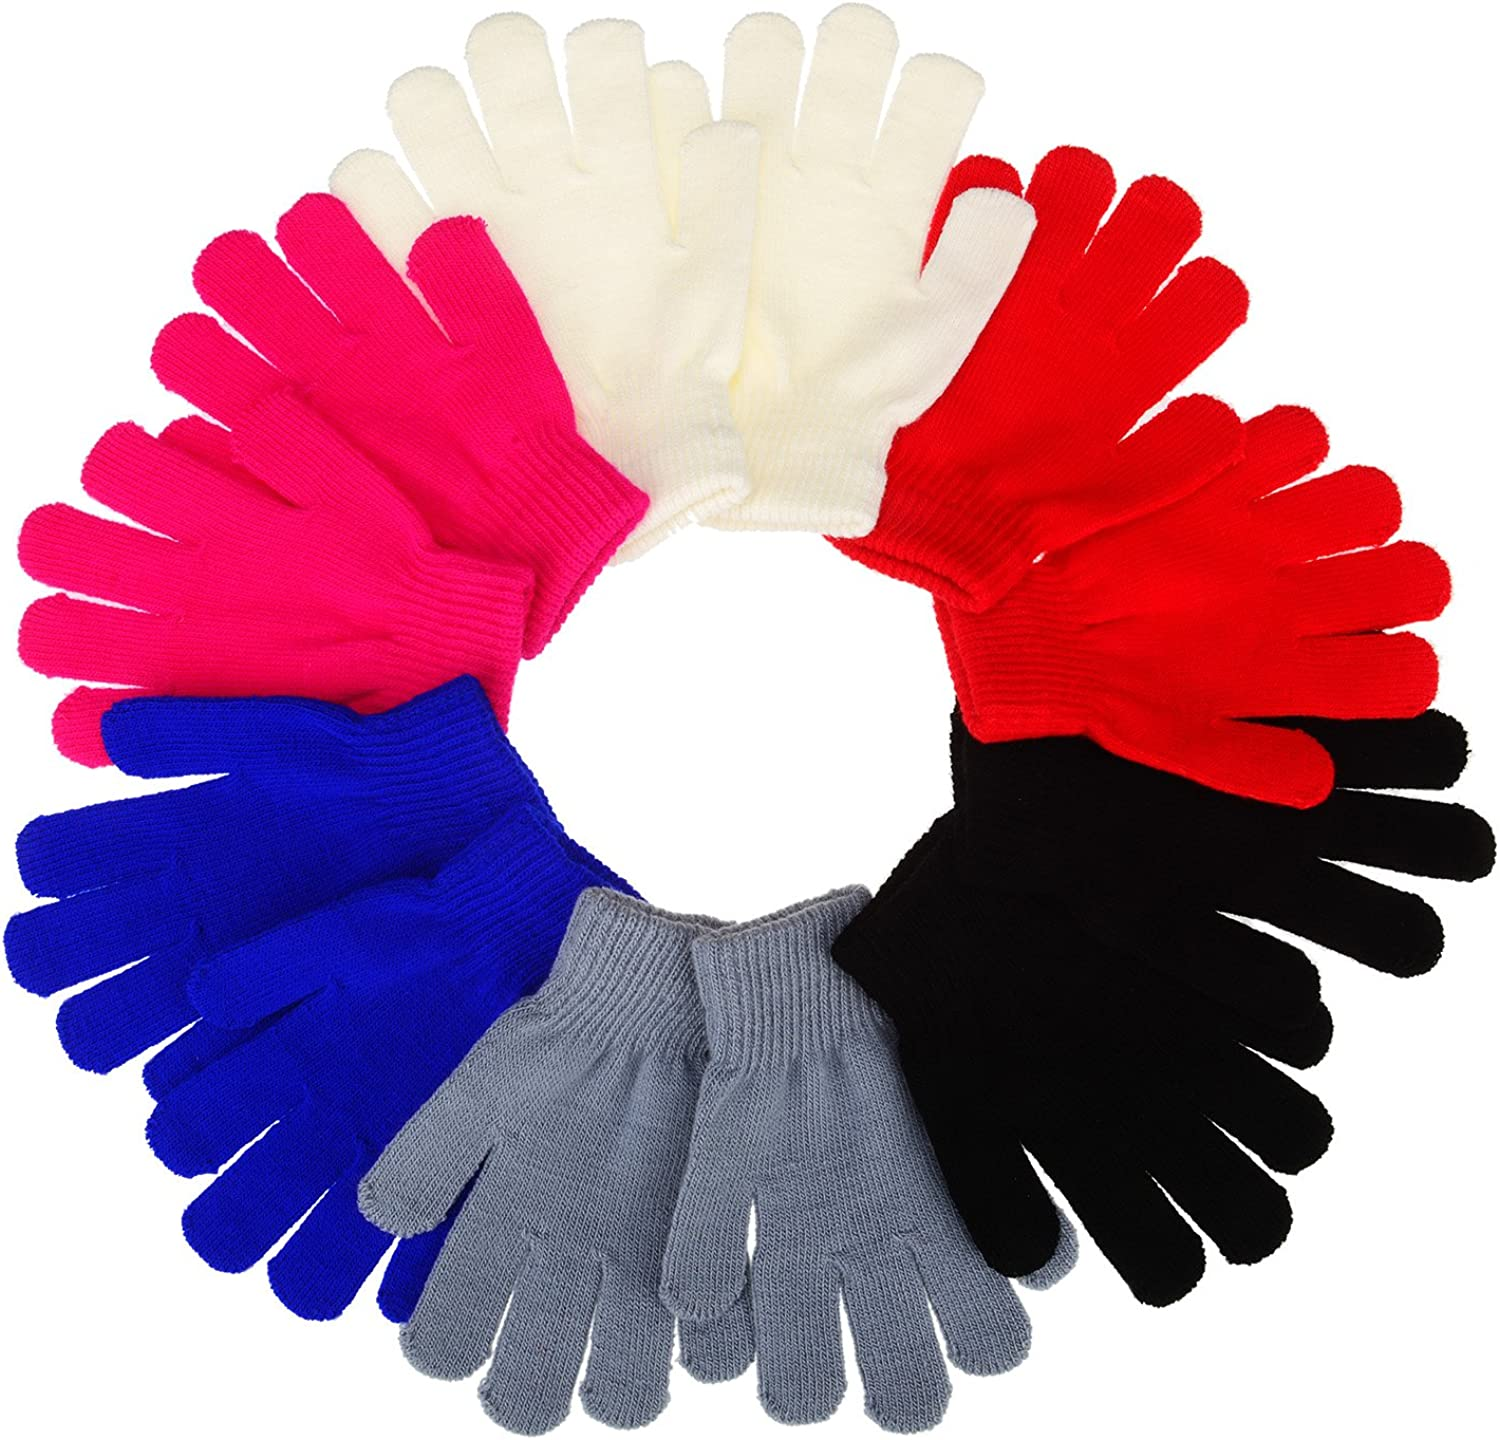 Sumind 12 Pairs Winter Knitted Magic Stretch Gloves Anti-slip Knit Cotton Warm Gloves for Children